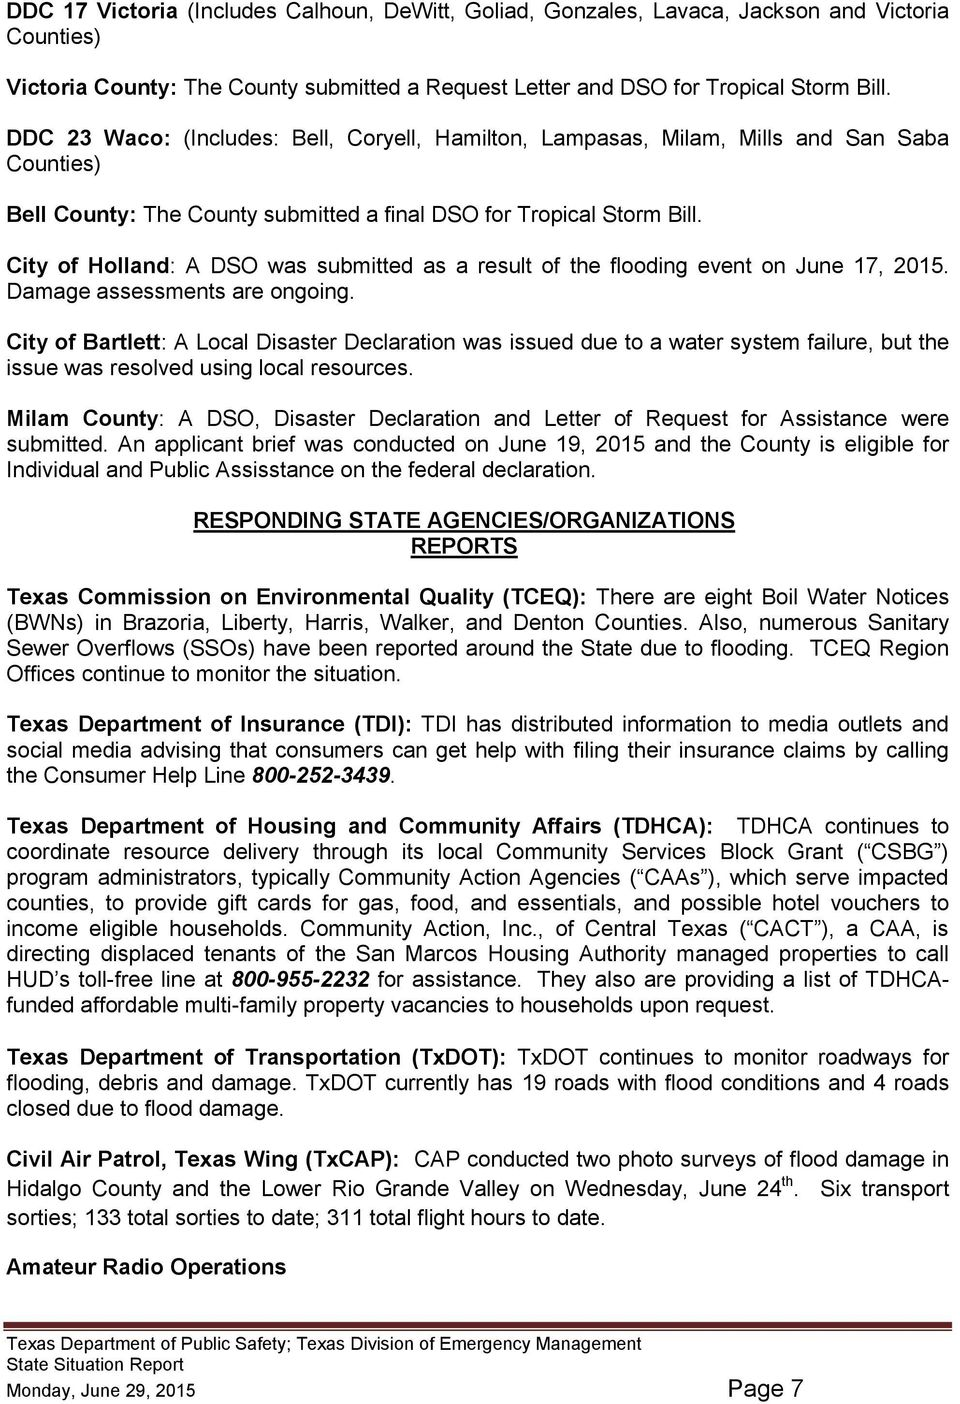 City of Holland: A DSO was submitted as a result of the flooding event on June 17, 2015. Damage assessments are ongoing.